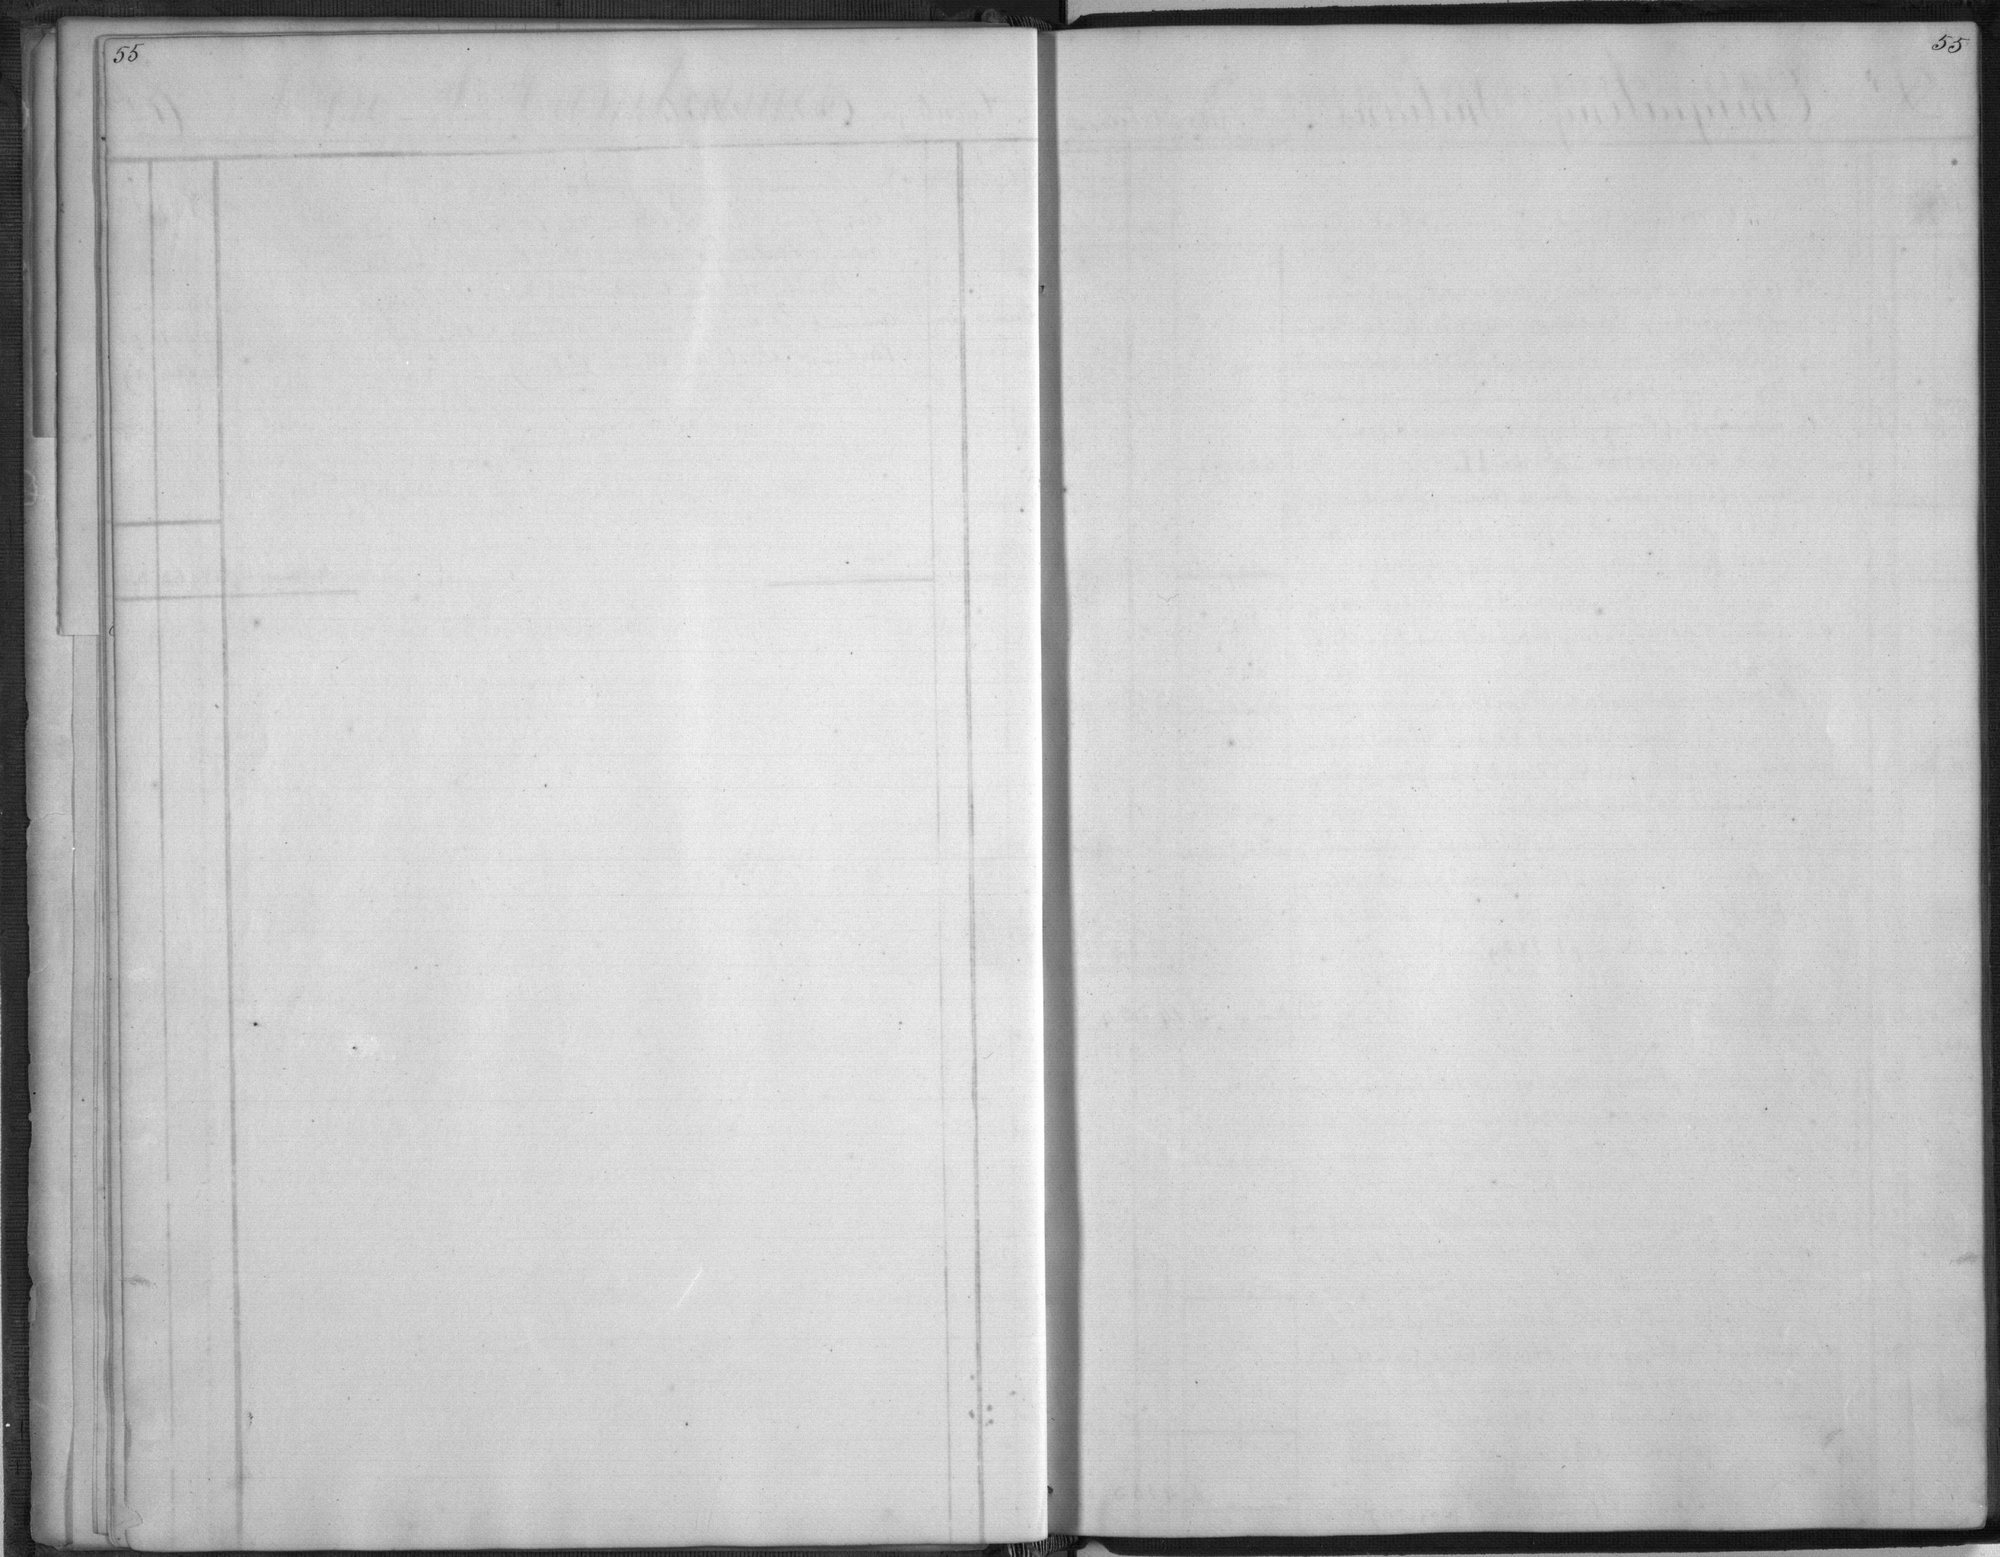 United States Office of Indian Affairs, Central Superintendency, St. Louis, Missouri. Volume 26, Accounts - 55